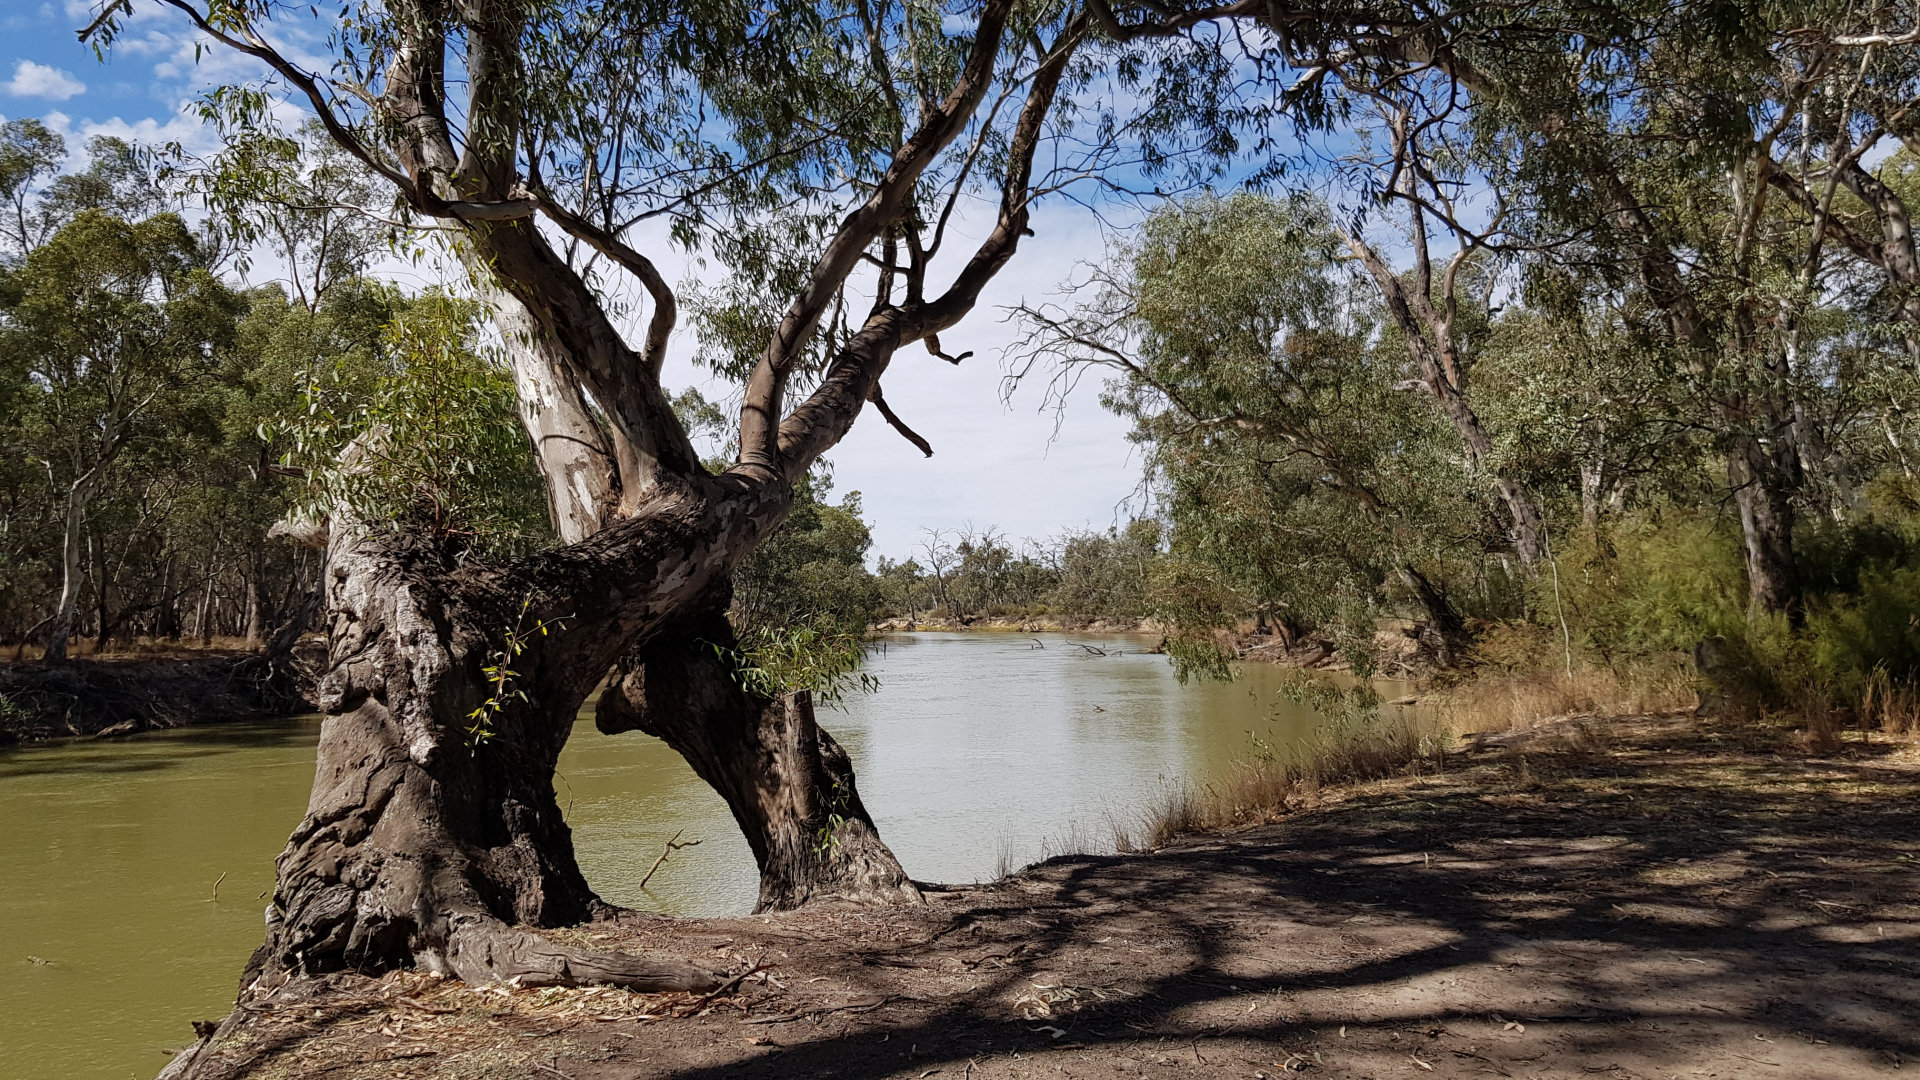 Murray River at the Loddon Floodway free camp area on Pental Island. It is on the northern section of the island on the banks of the Murray River.